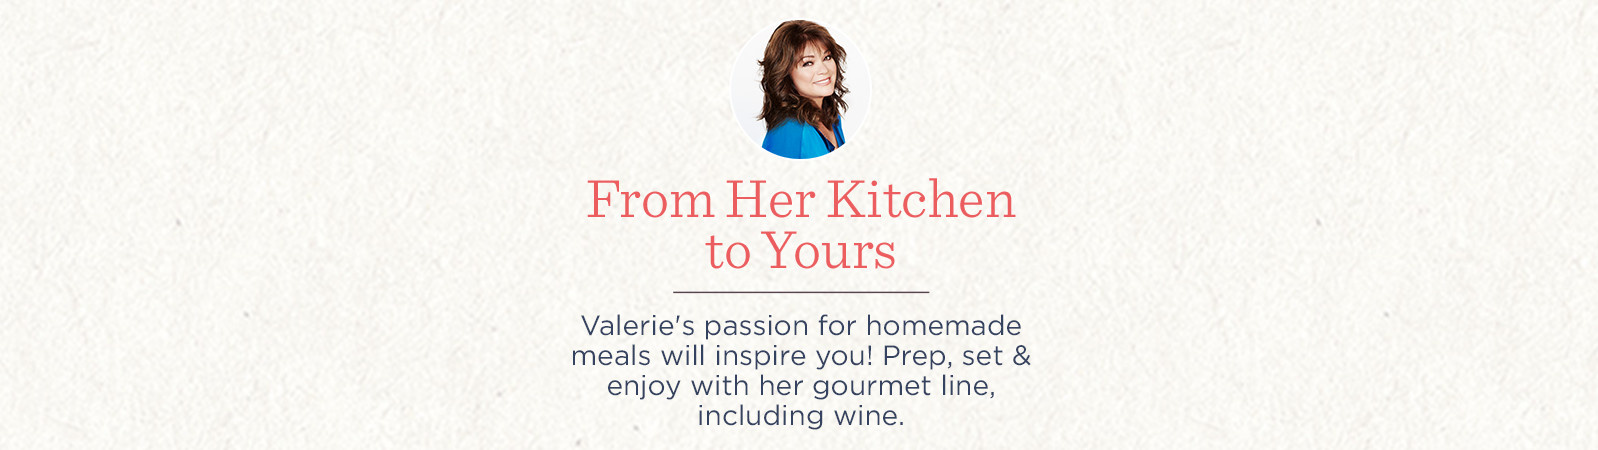 Valerie's passion for homemade meals will inspire you! Prep, set & enjoy with her gourmet line, including wine.